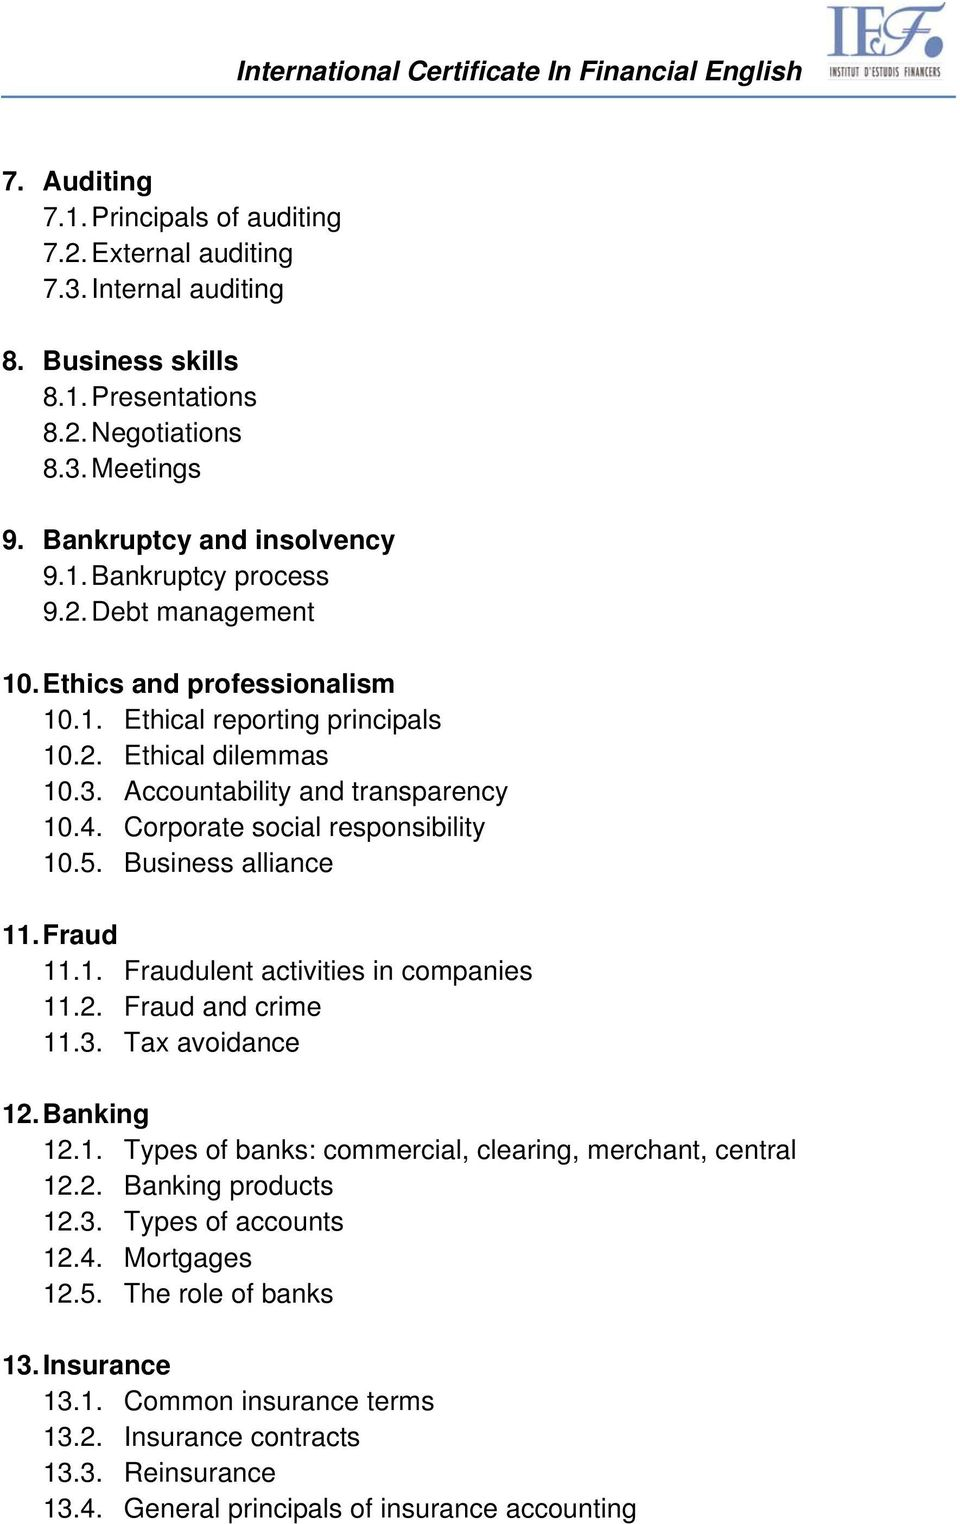 Business alliance 11. Fraud 11.1. Fraudulent activities in companies 11.2. Fraud and crime 11.3. Tax avoidance 12. Banking 12.1. Types of banks: commercial, clearing, merchant, central 12.2. Banking products 12.